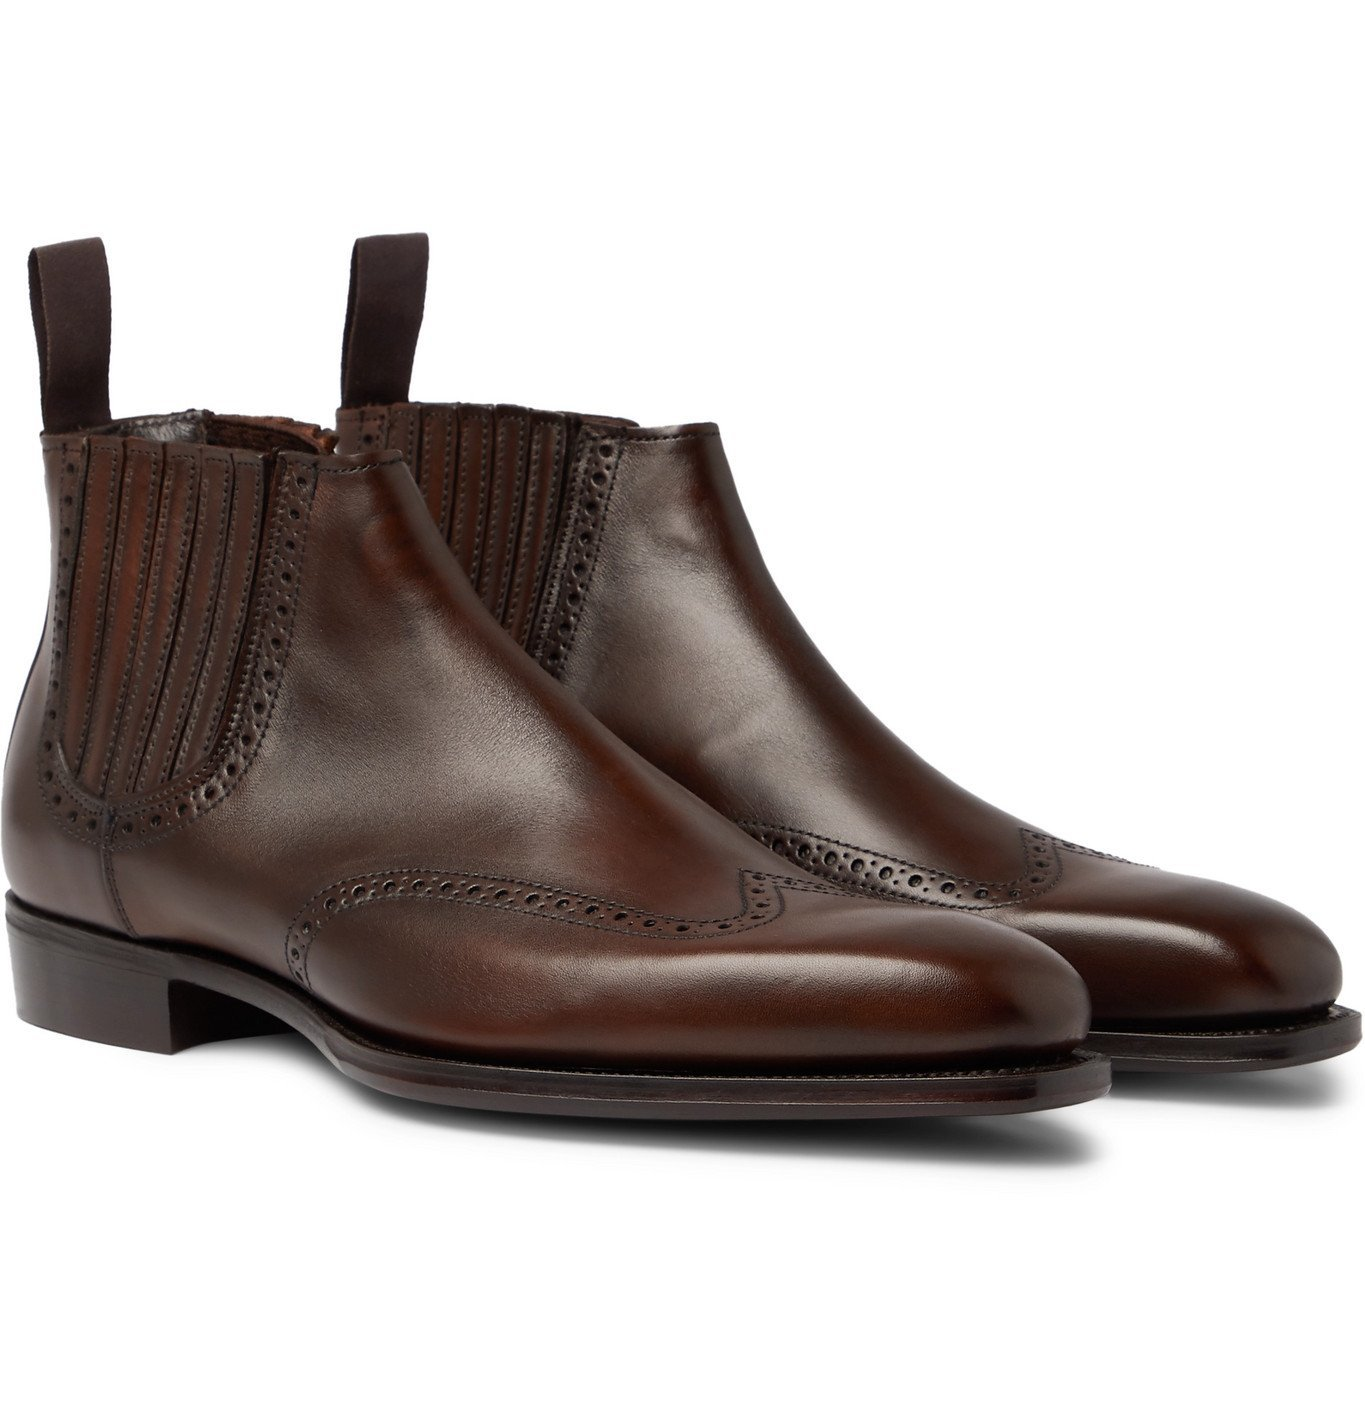 Photo: Kingsman - George Cleverley Veronique Leather Brogue Chelsea Boots - Brown